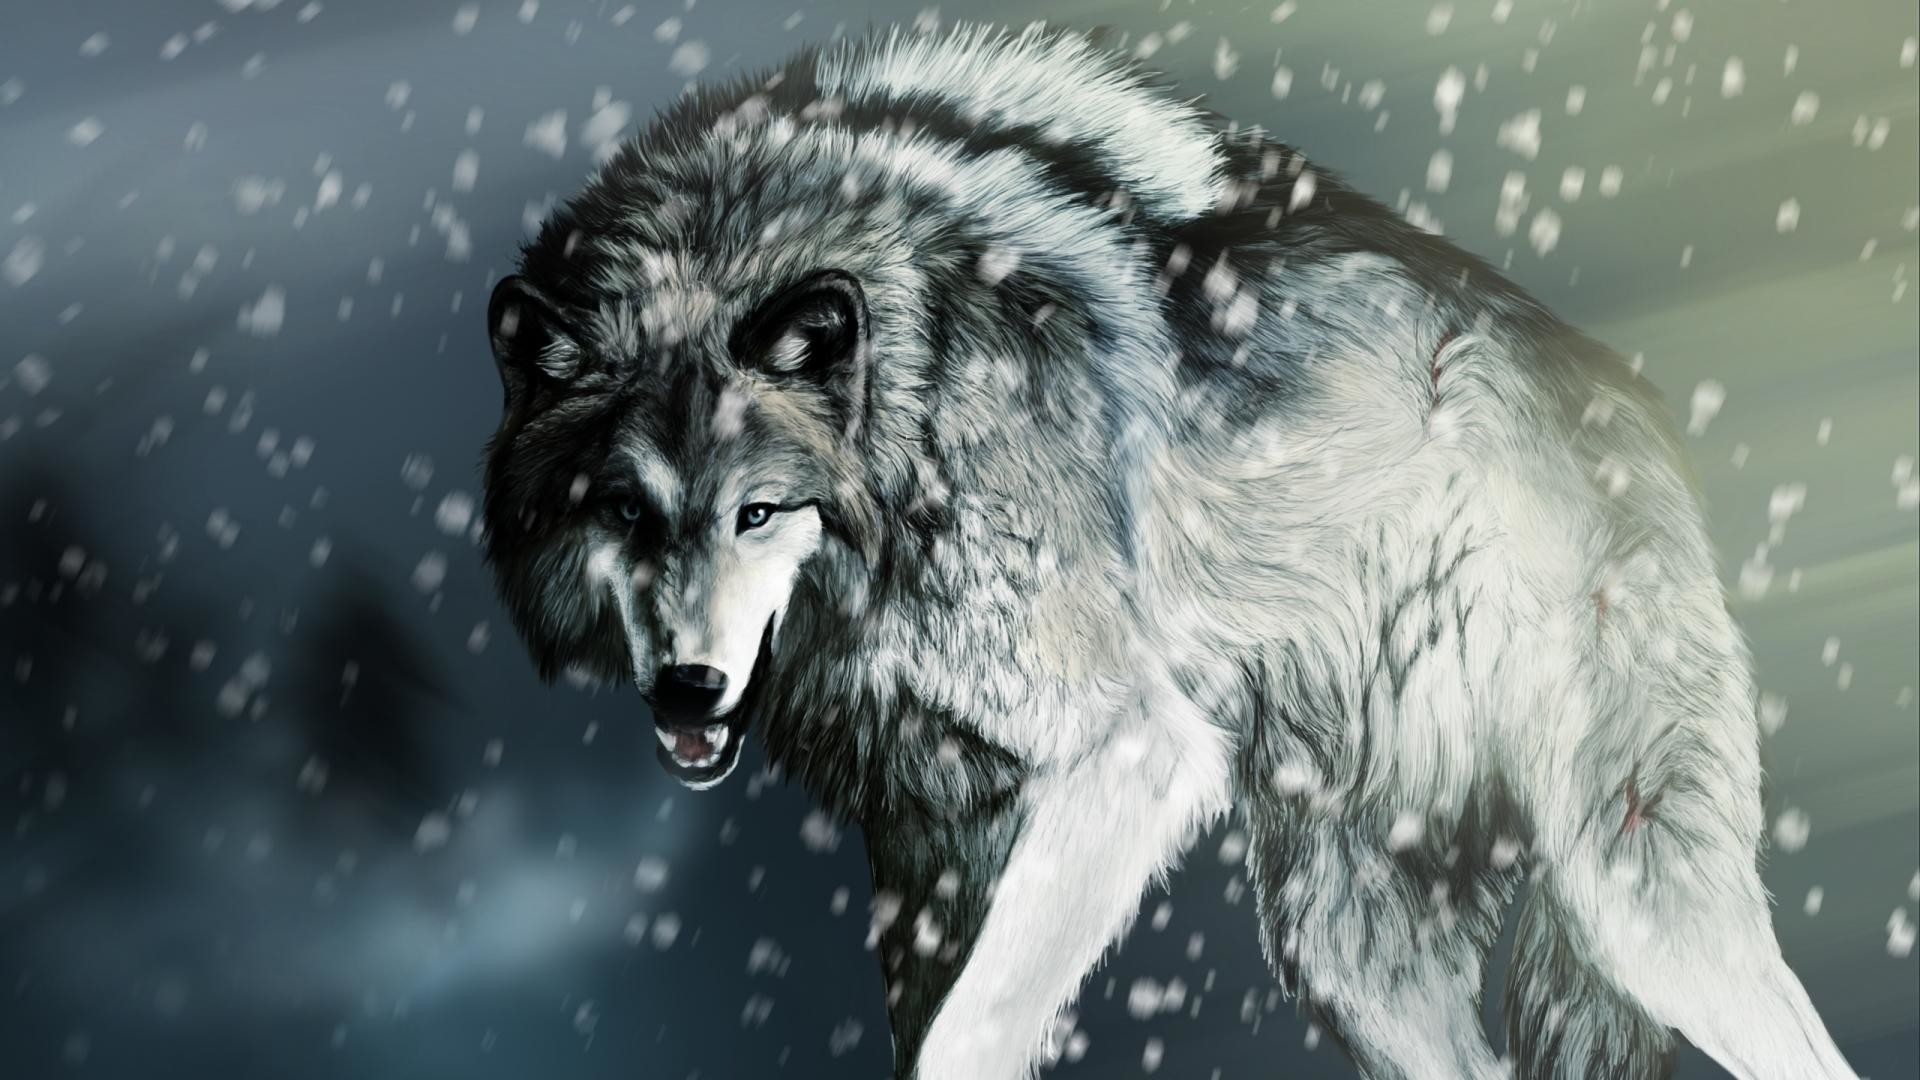 cool wolf wallpaper (61+ images)